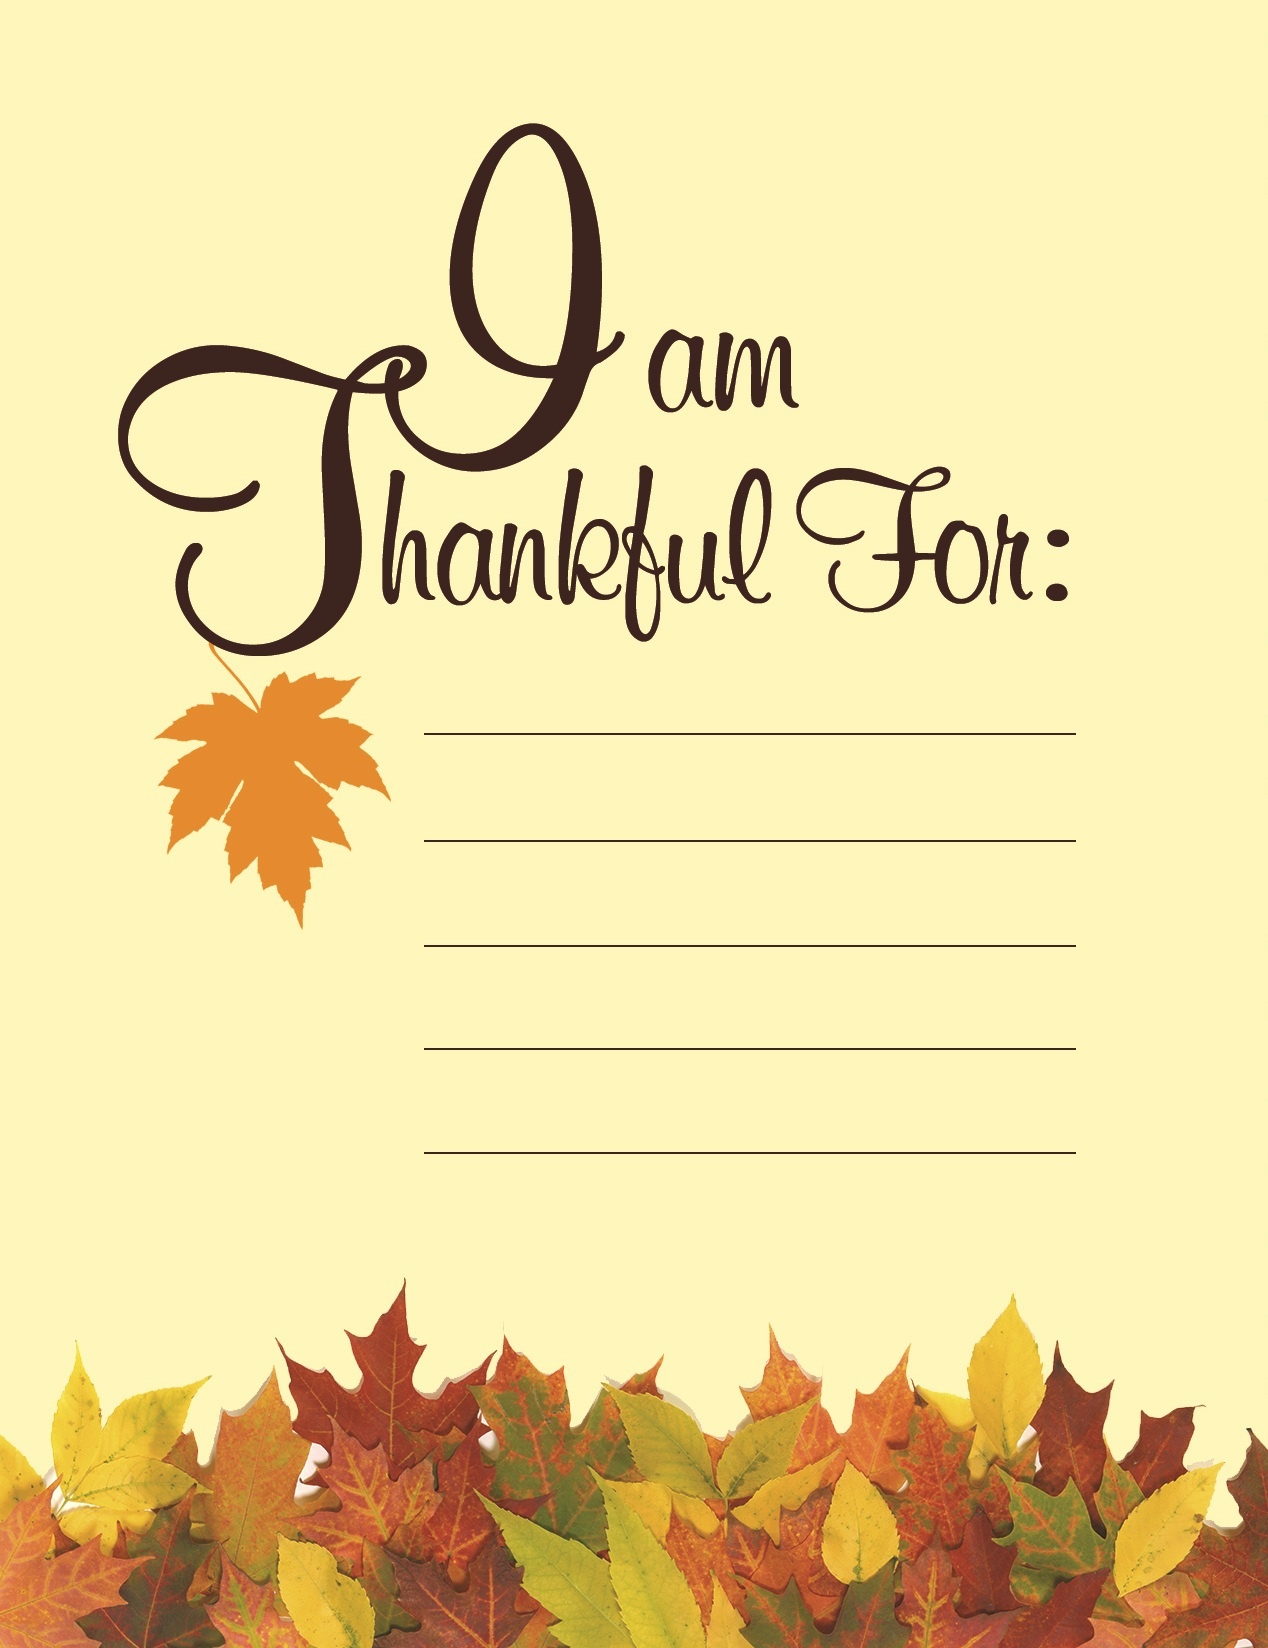 Gratitude This Thanksgiving | American Greetings Blog - Happy Thanksgiving Cards Free Printable